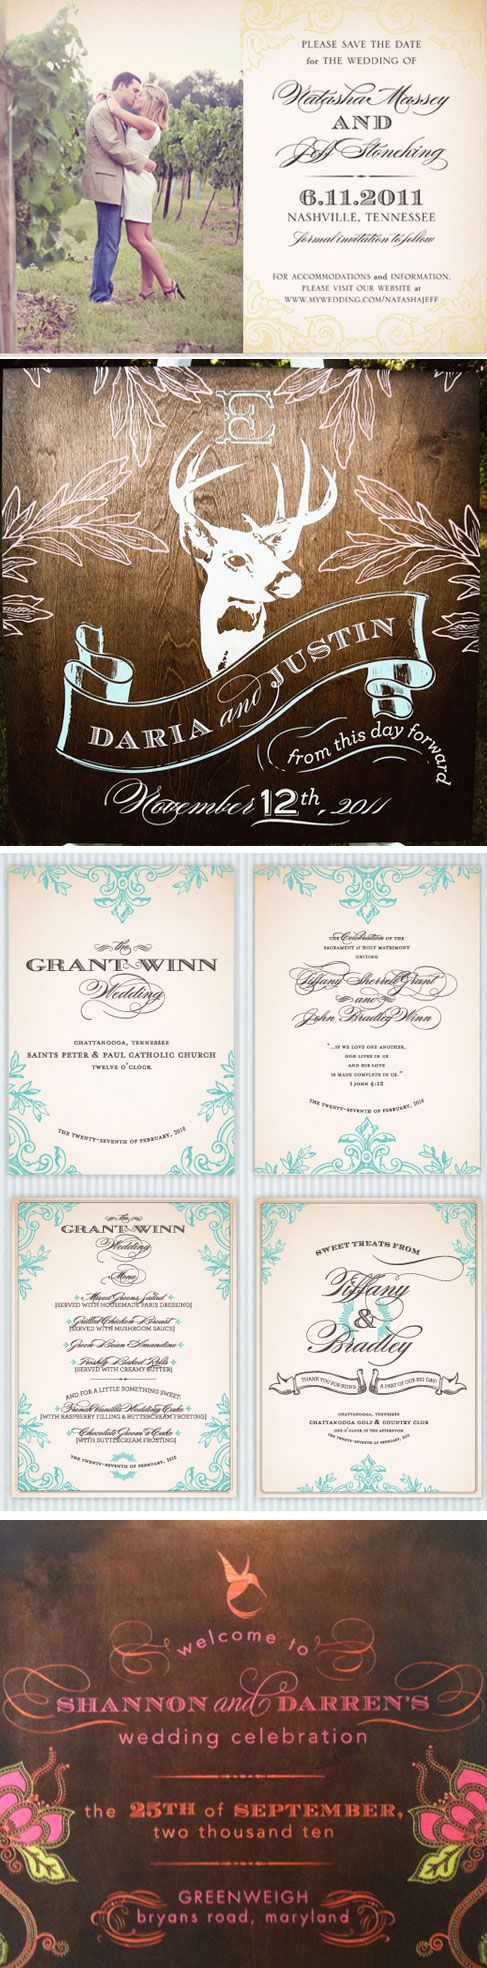 deer hunter wedding invitations%0A love the invitation on the top  the pic and the font  makes me smile